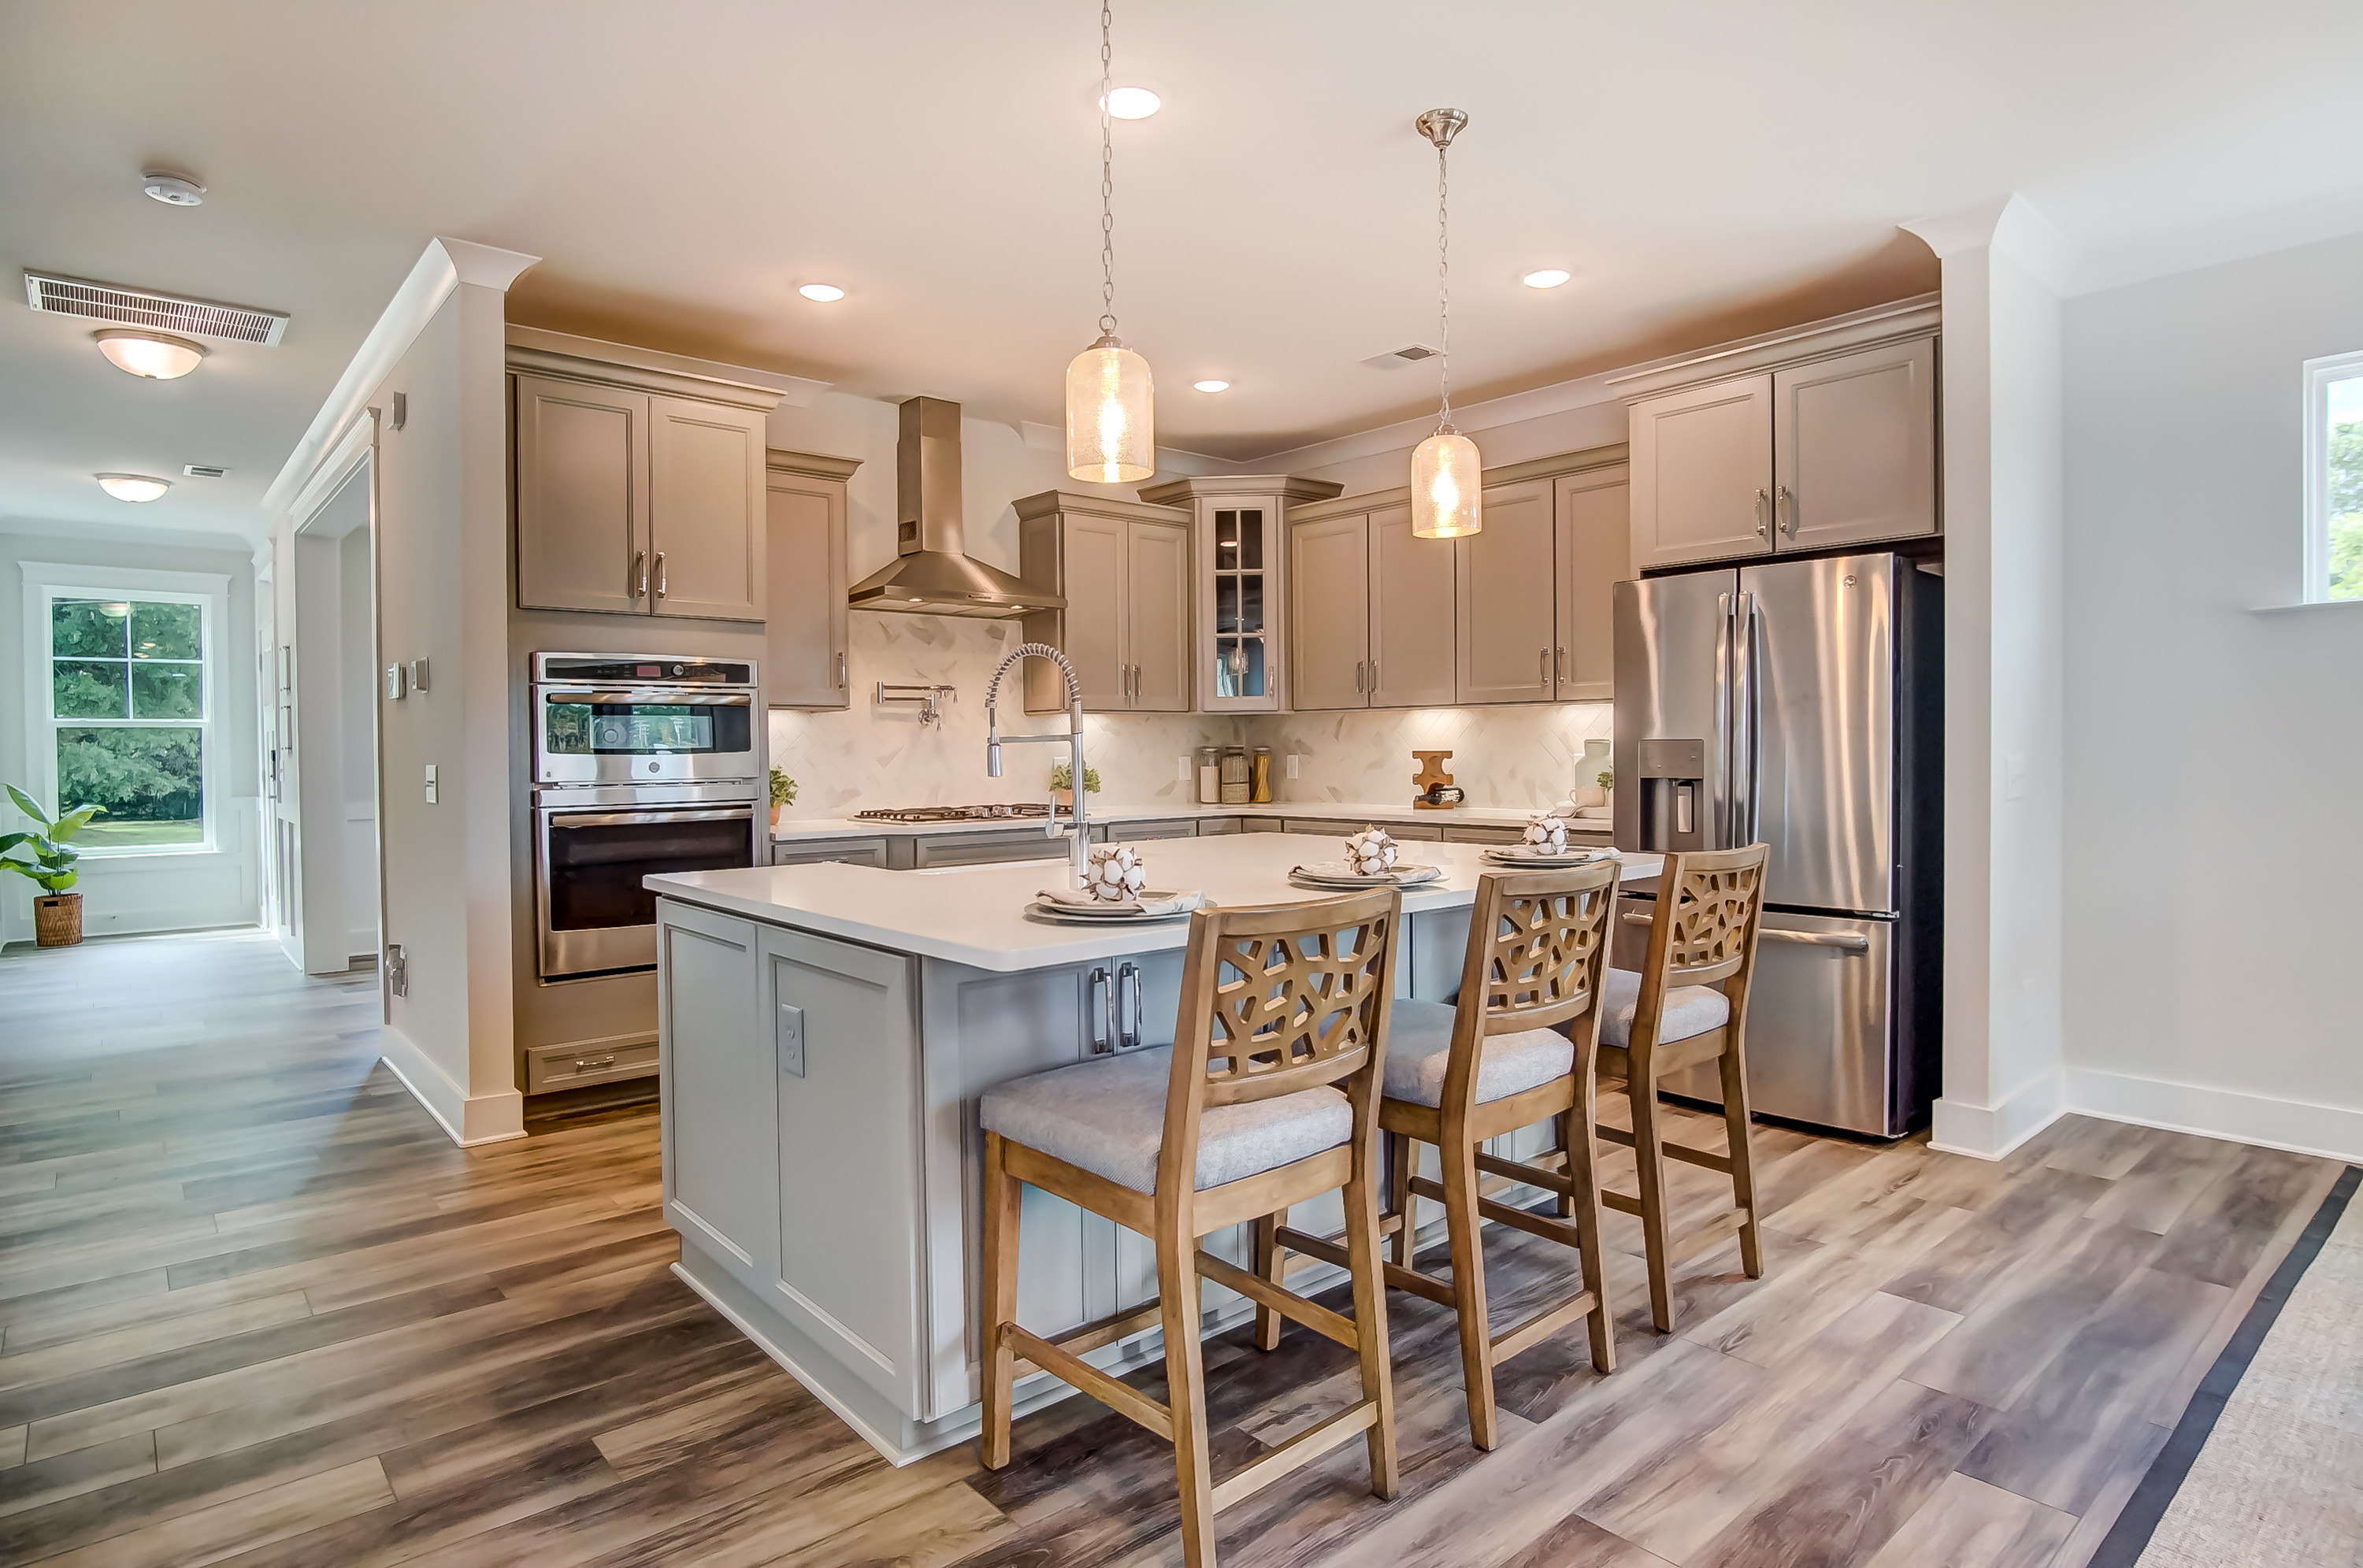 montague-laurel walk-kitchen 1.jpg